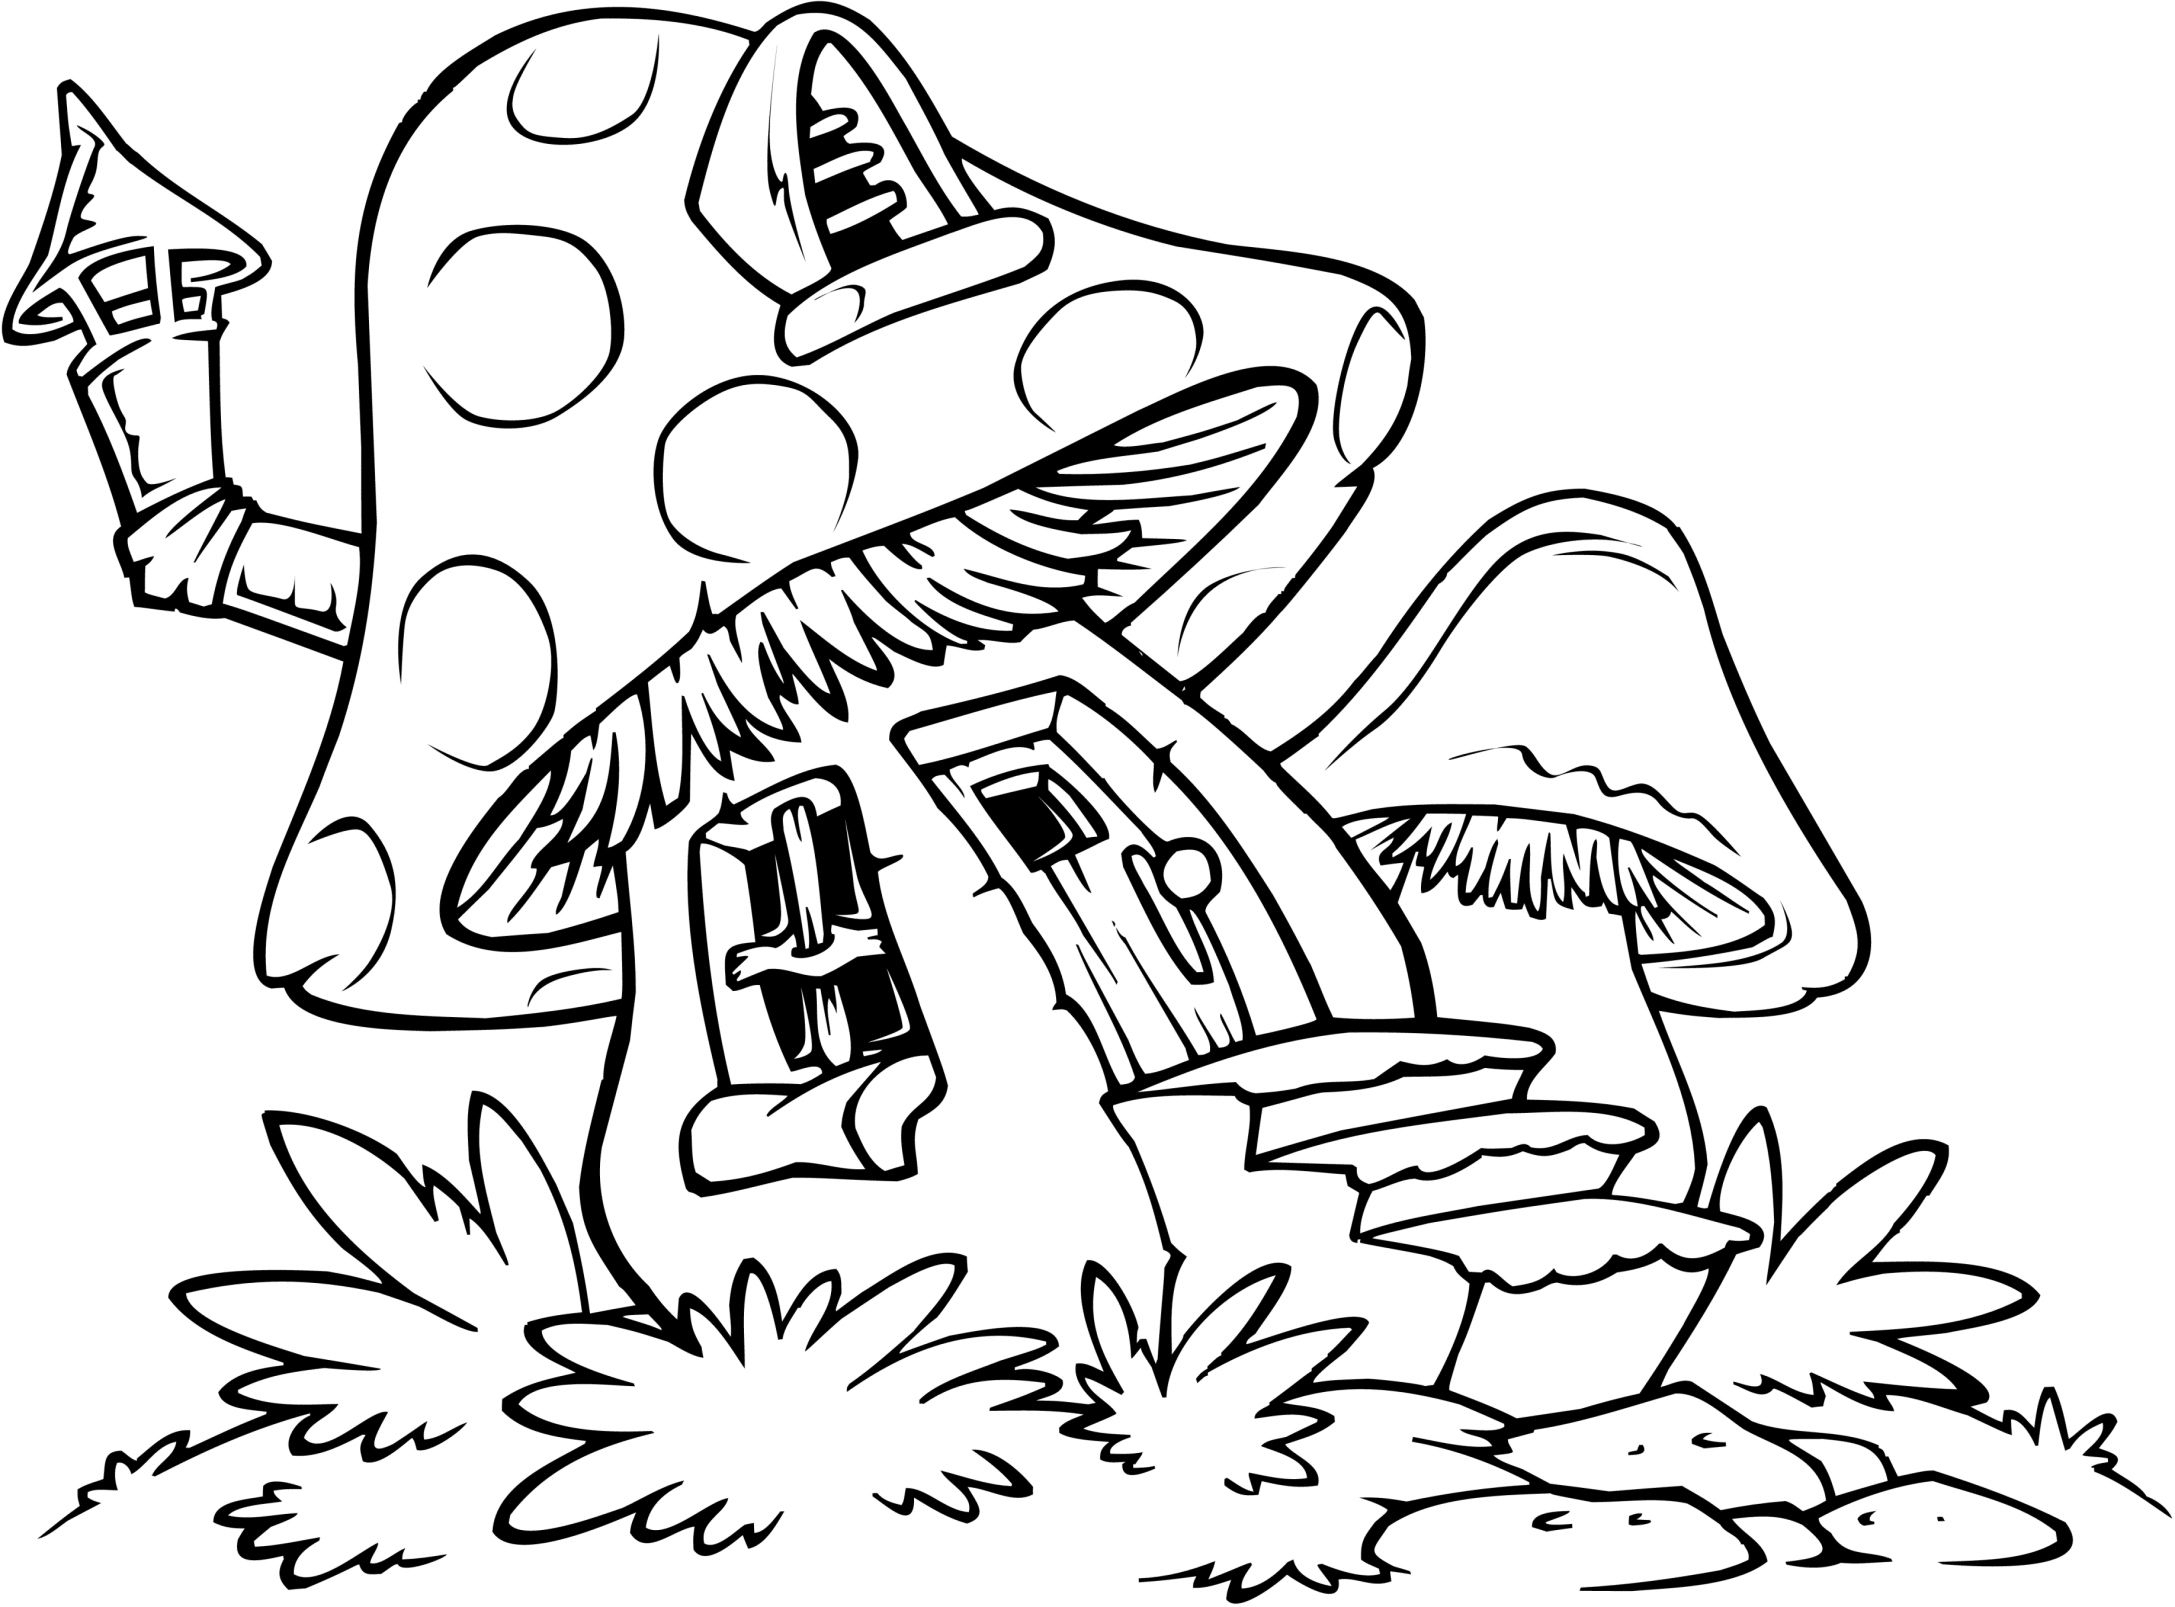 Easy Coloring Pages | Zendoodles For Cards | Pinterest | House - Free Printable Mushroom Coloring Pages